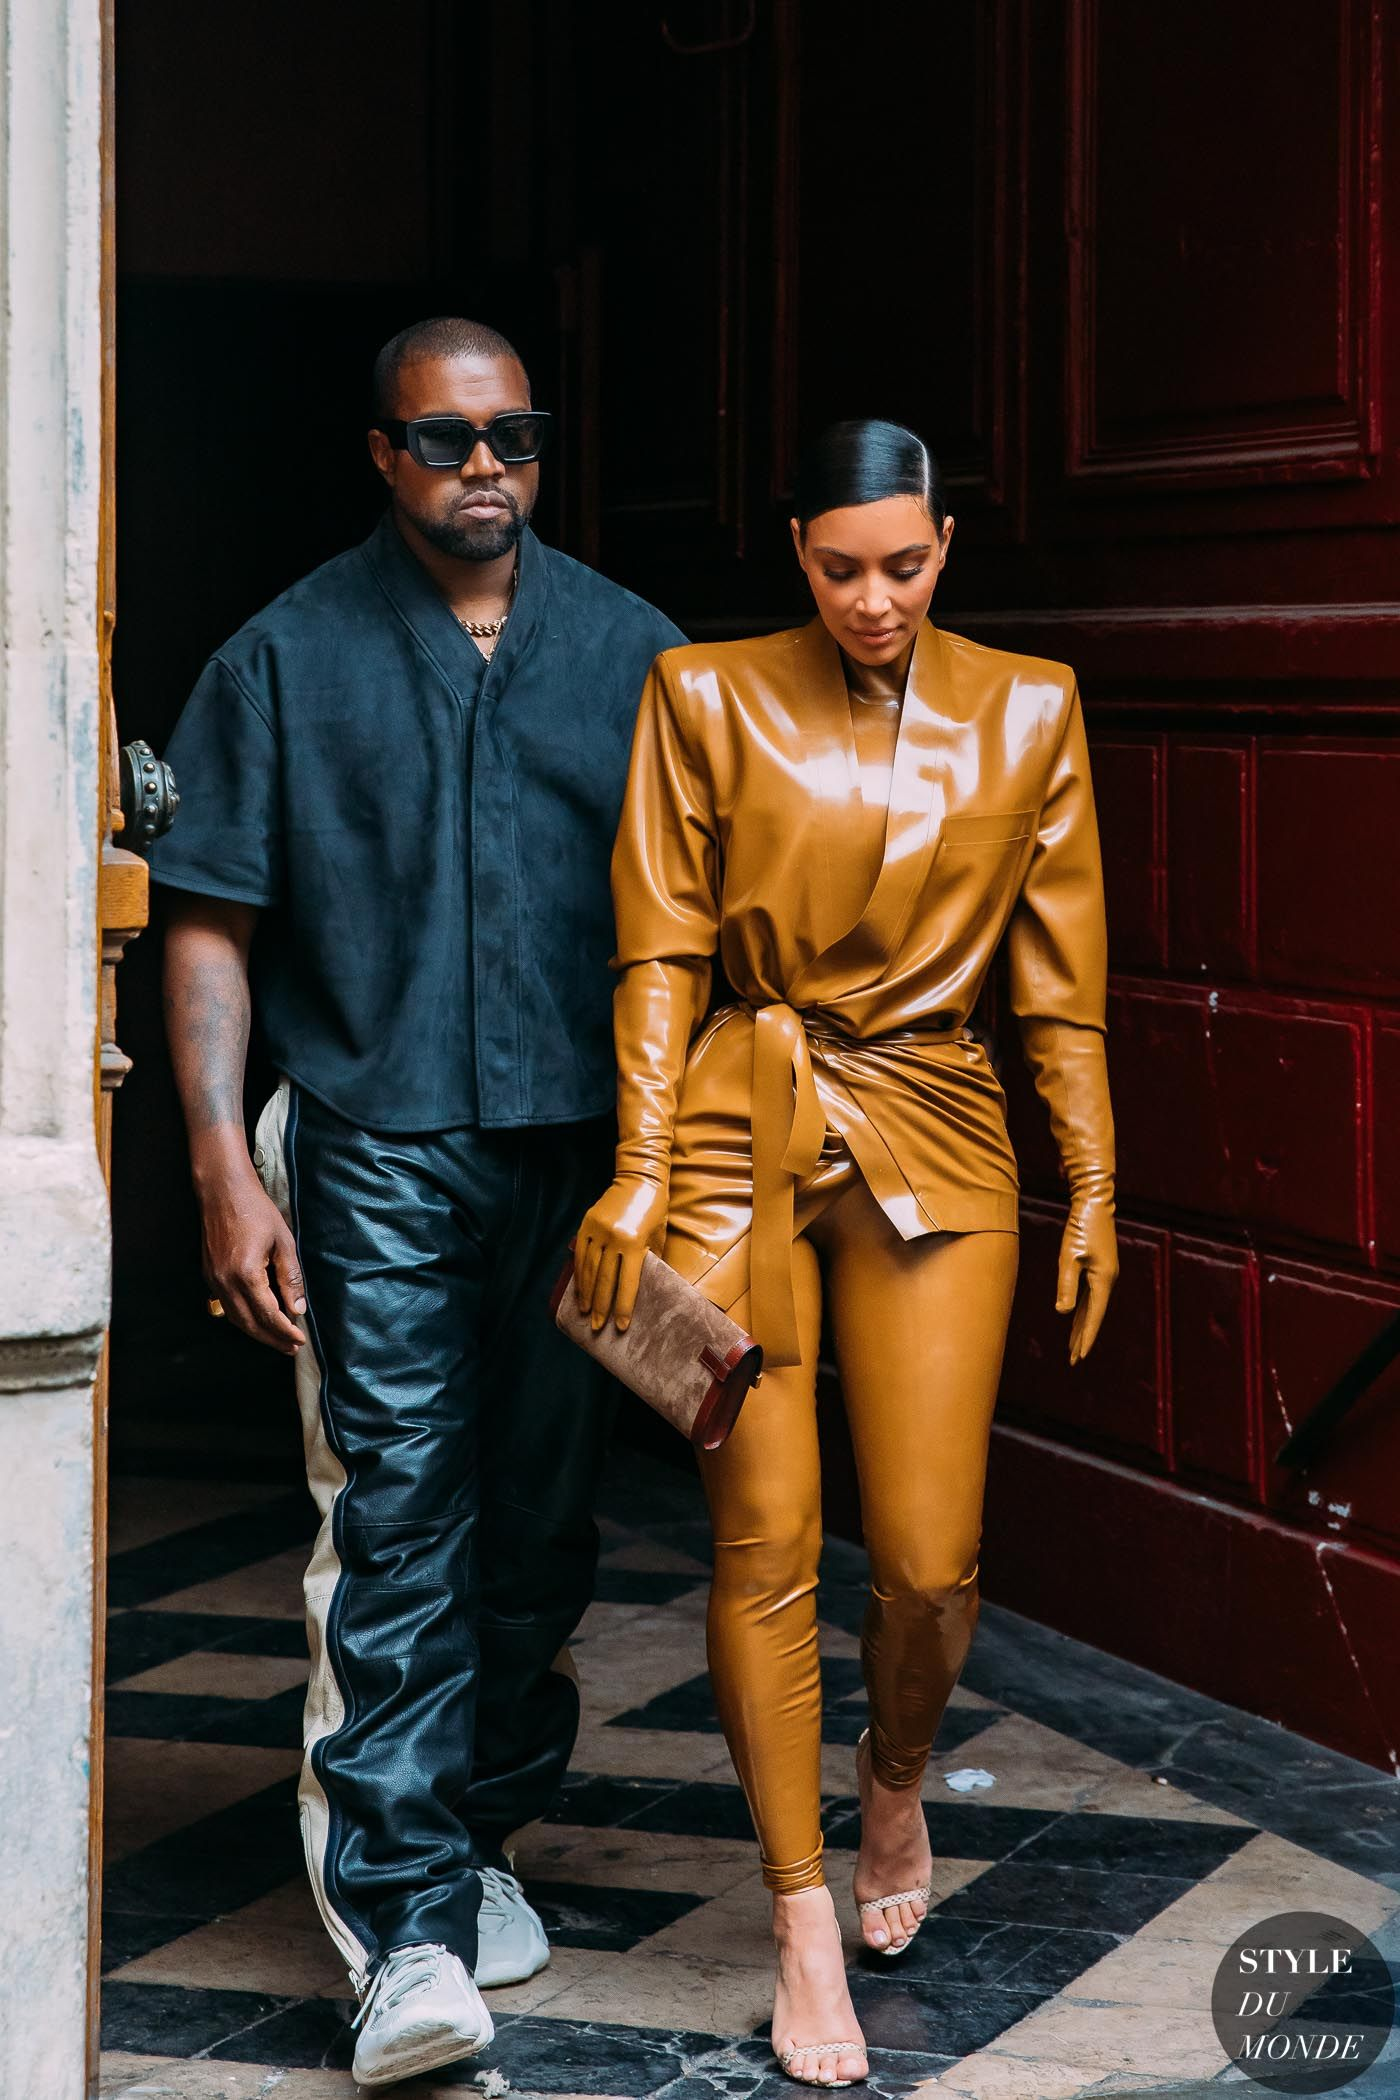 Paris Fw 2020 Street Style Kanye West And Kim Kardashian Style Du Monde Street Style St In 2020 Kanye West And Kim Kim Kardashian Kanye West Street Fashion Photos